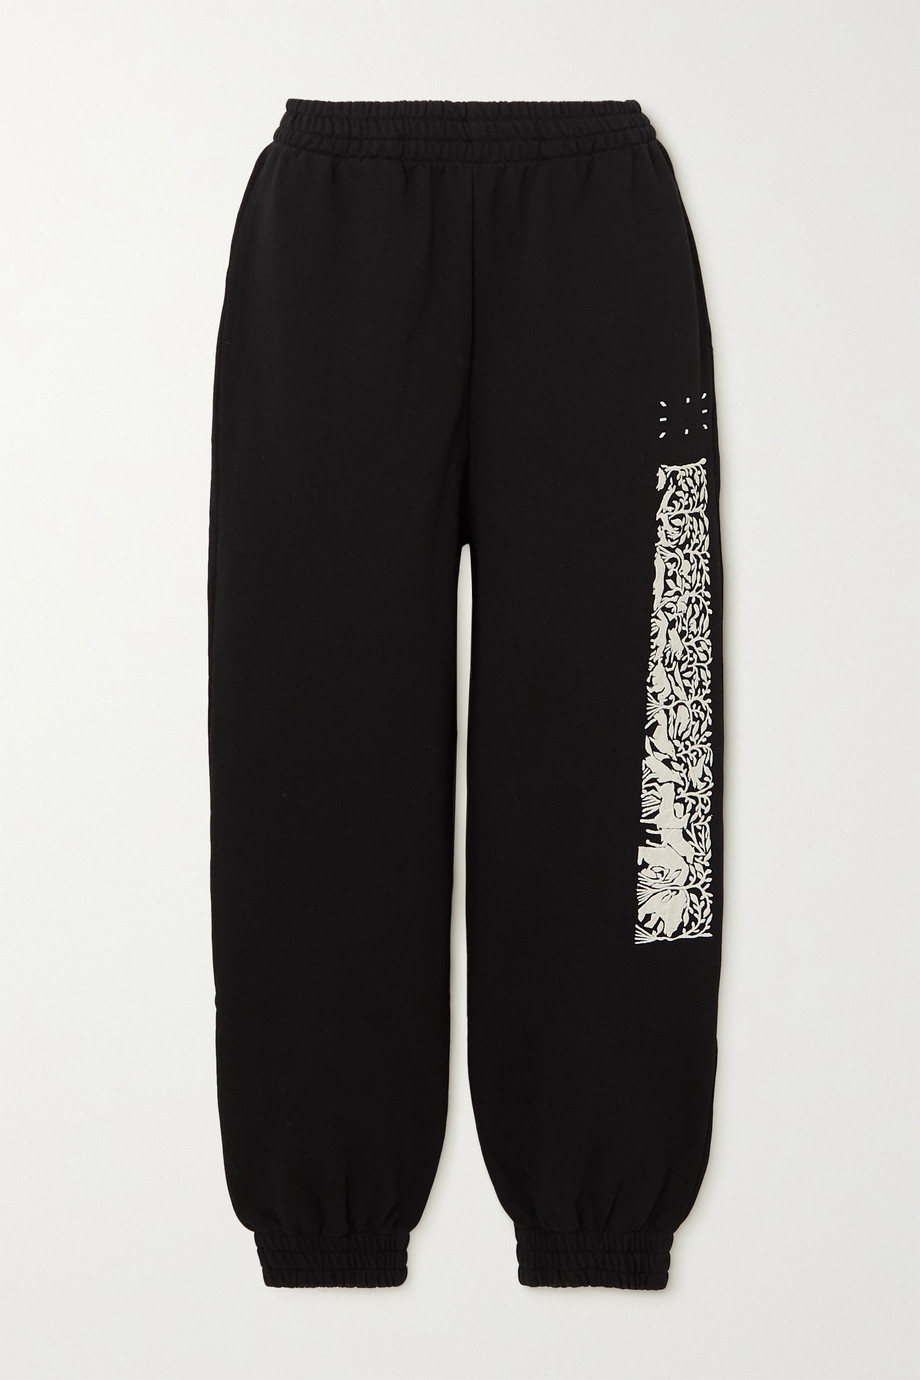 MCQ ALEXANDER MCQUEEN Walk Of Life appliquéd embroidered cotton-jersey track pants